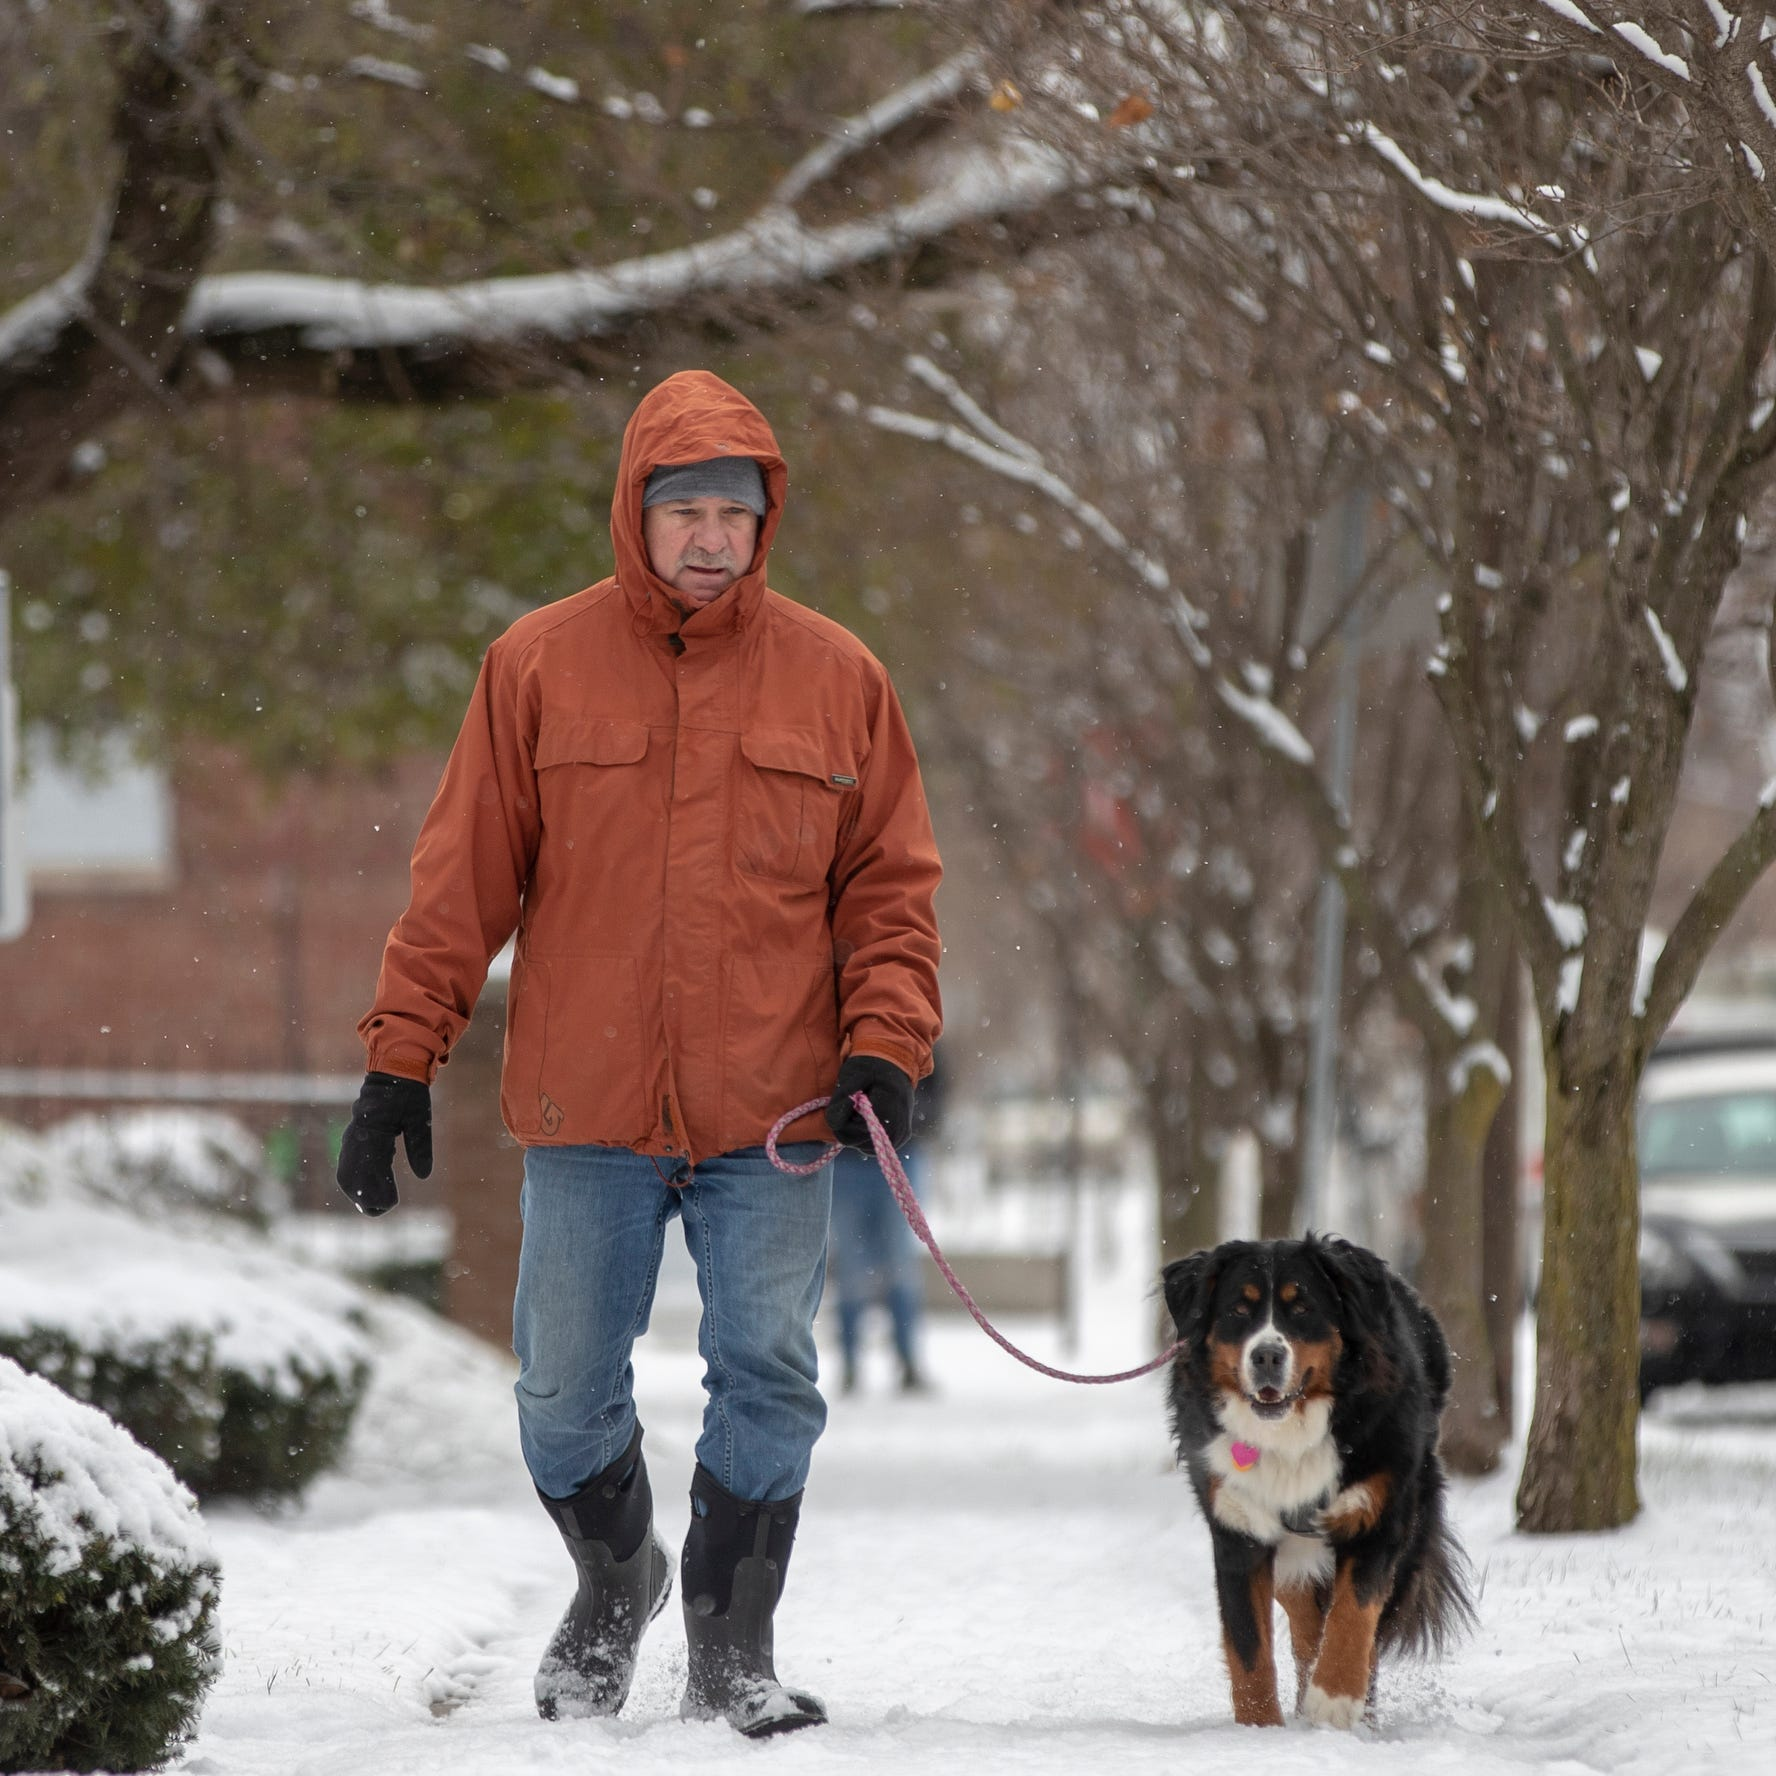 Is Indianapolis getting a white Christmas? Forecast says...